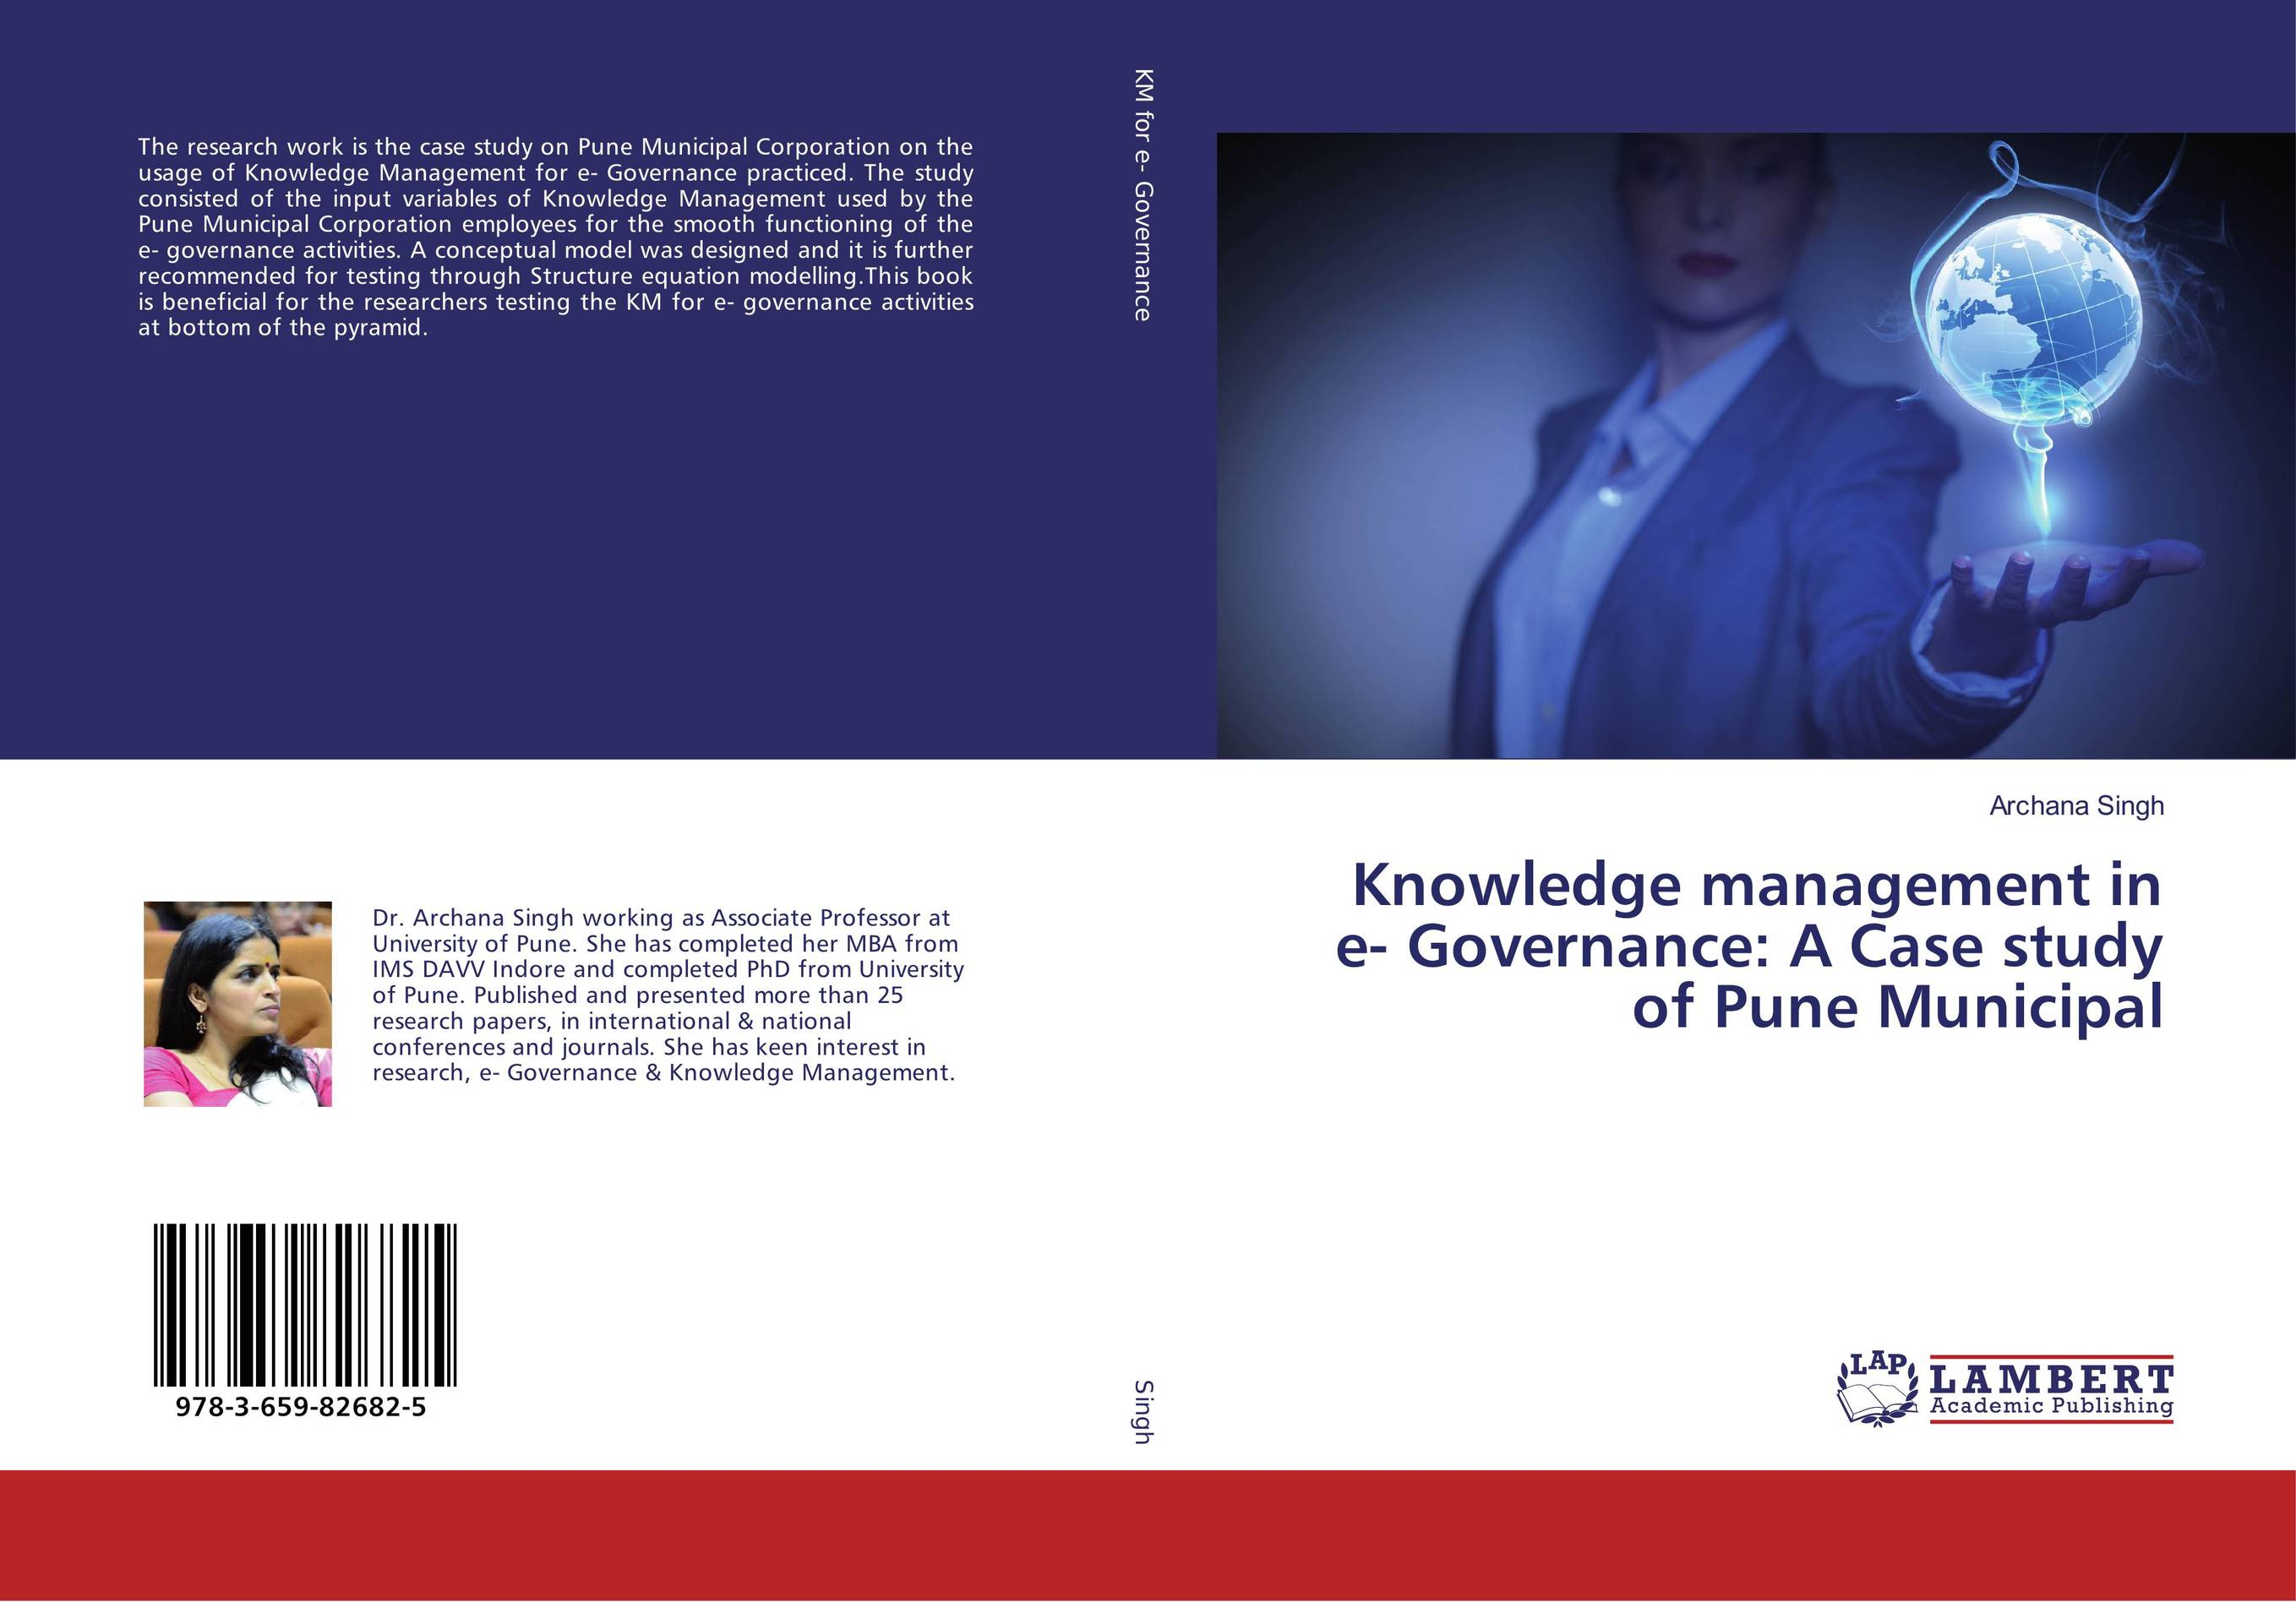 Knowledge management in e- Governance: A Case study of Pune Municipal a decision support tool for library book inventory management